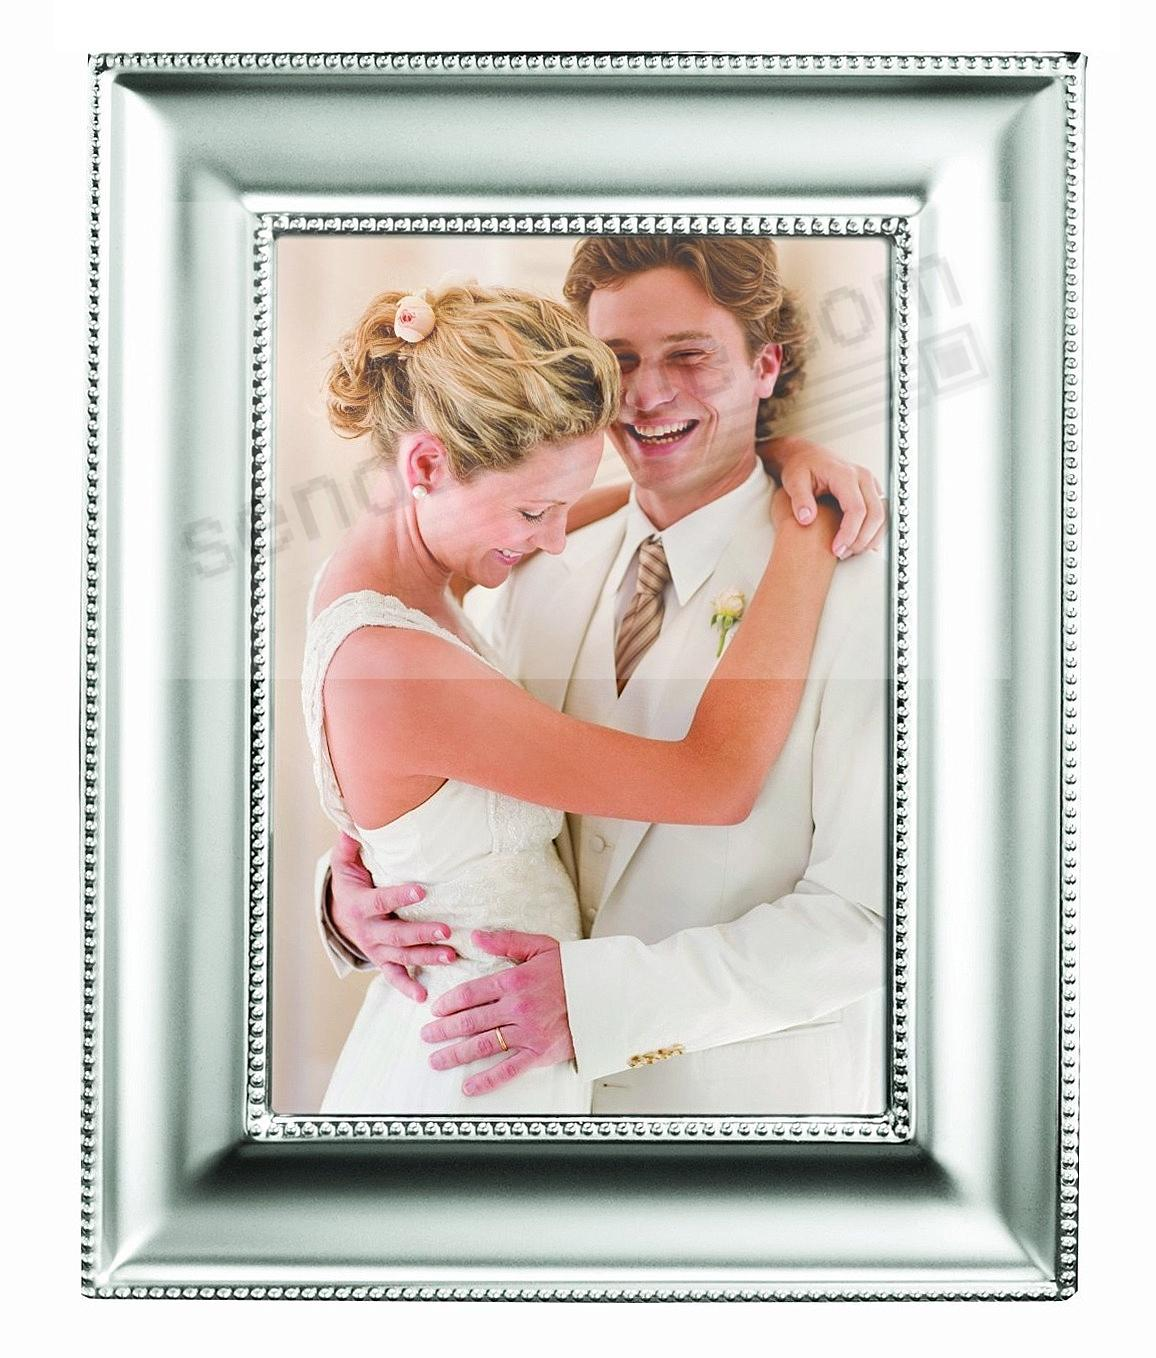 Silverplated SILHOUETTE frame by Prinz®